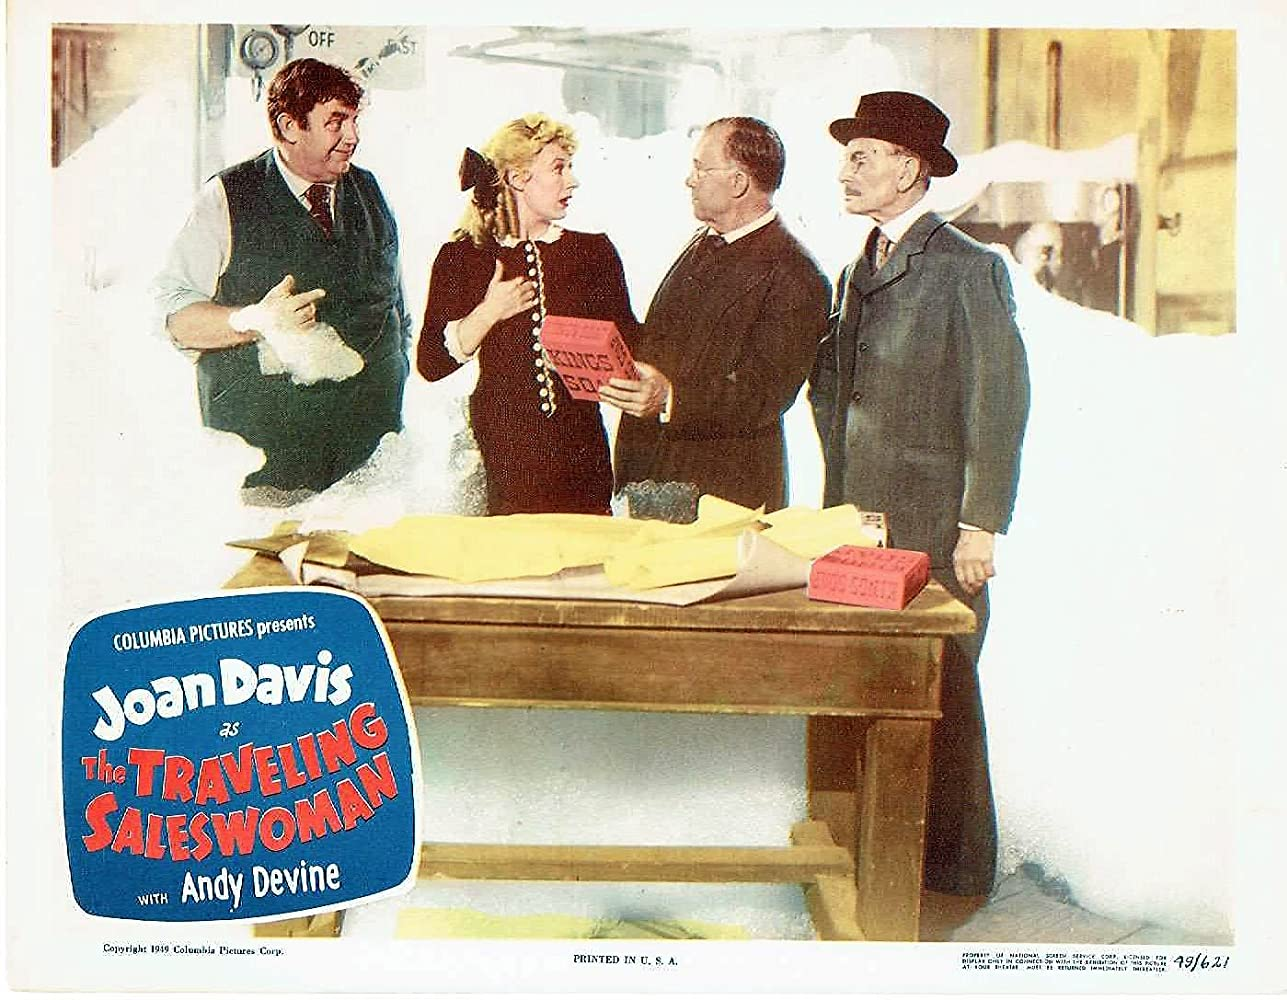 Joan Davis, Andy Devine, Charles Halton, and Harry Hayden in The Traveling Saleswoman (1950)